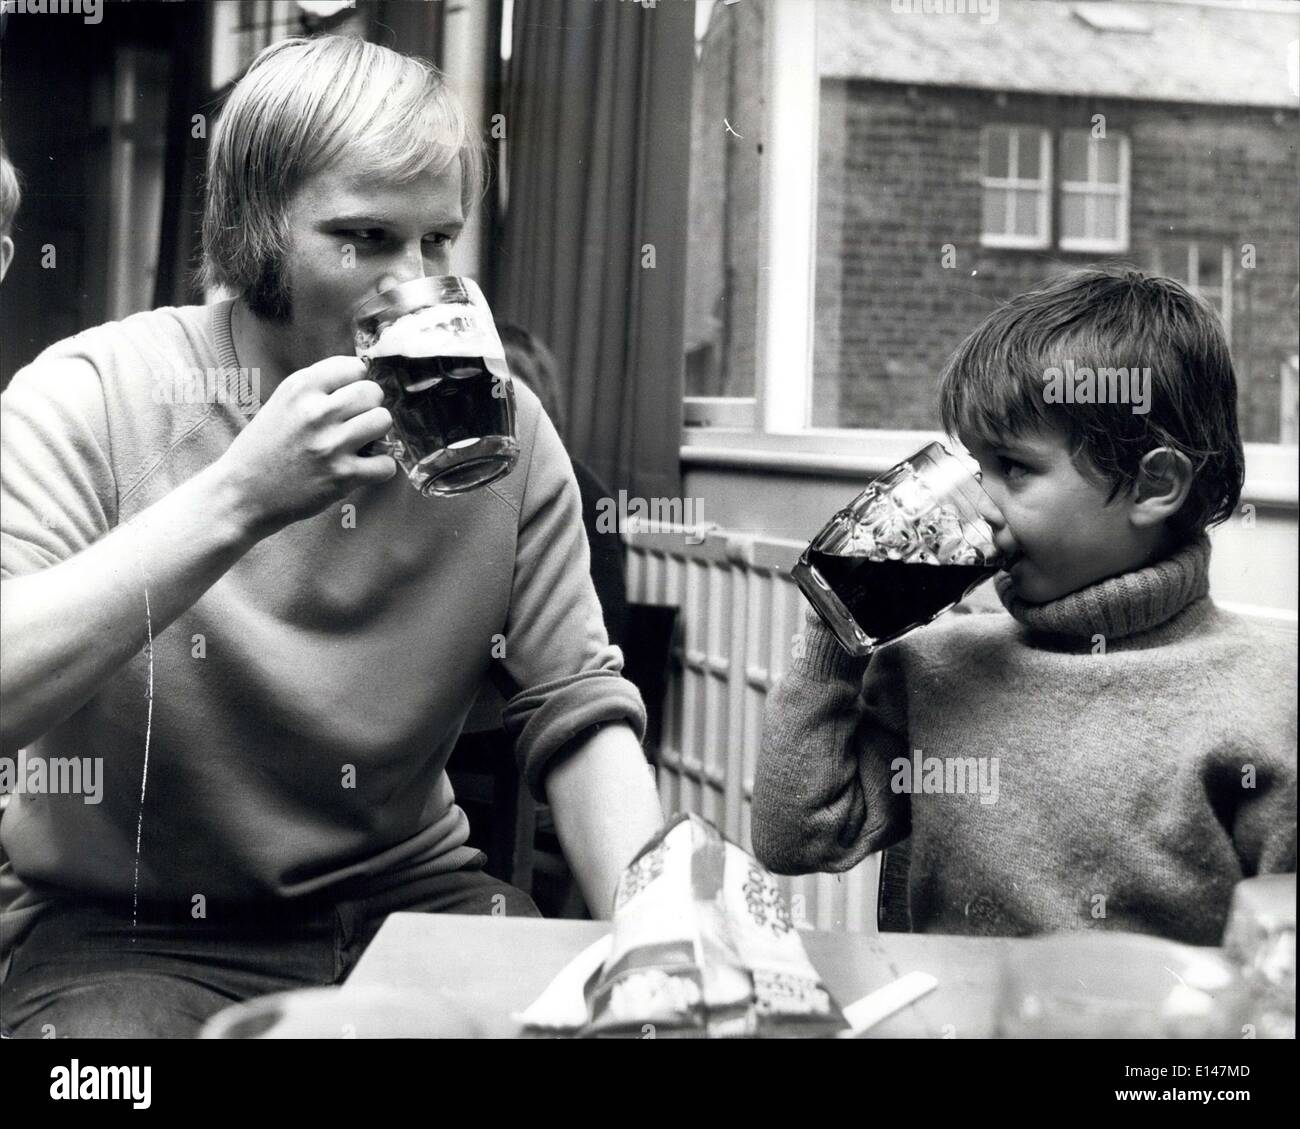 Apr. 17, 2012 - Six-year-old Andrew Born sinks a pint with Peter Fitton after training. ''Mine's Coke'' says Andrew. - Stock Image